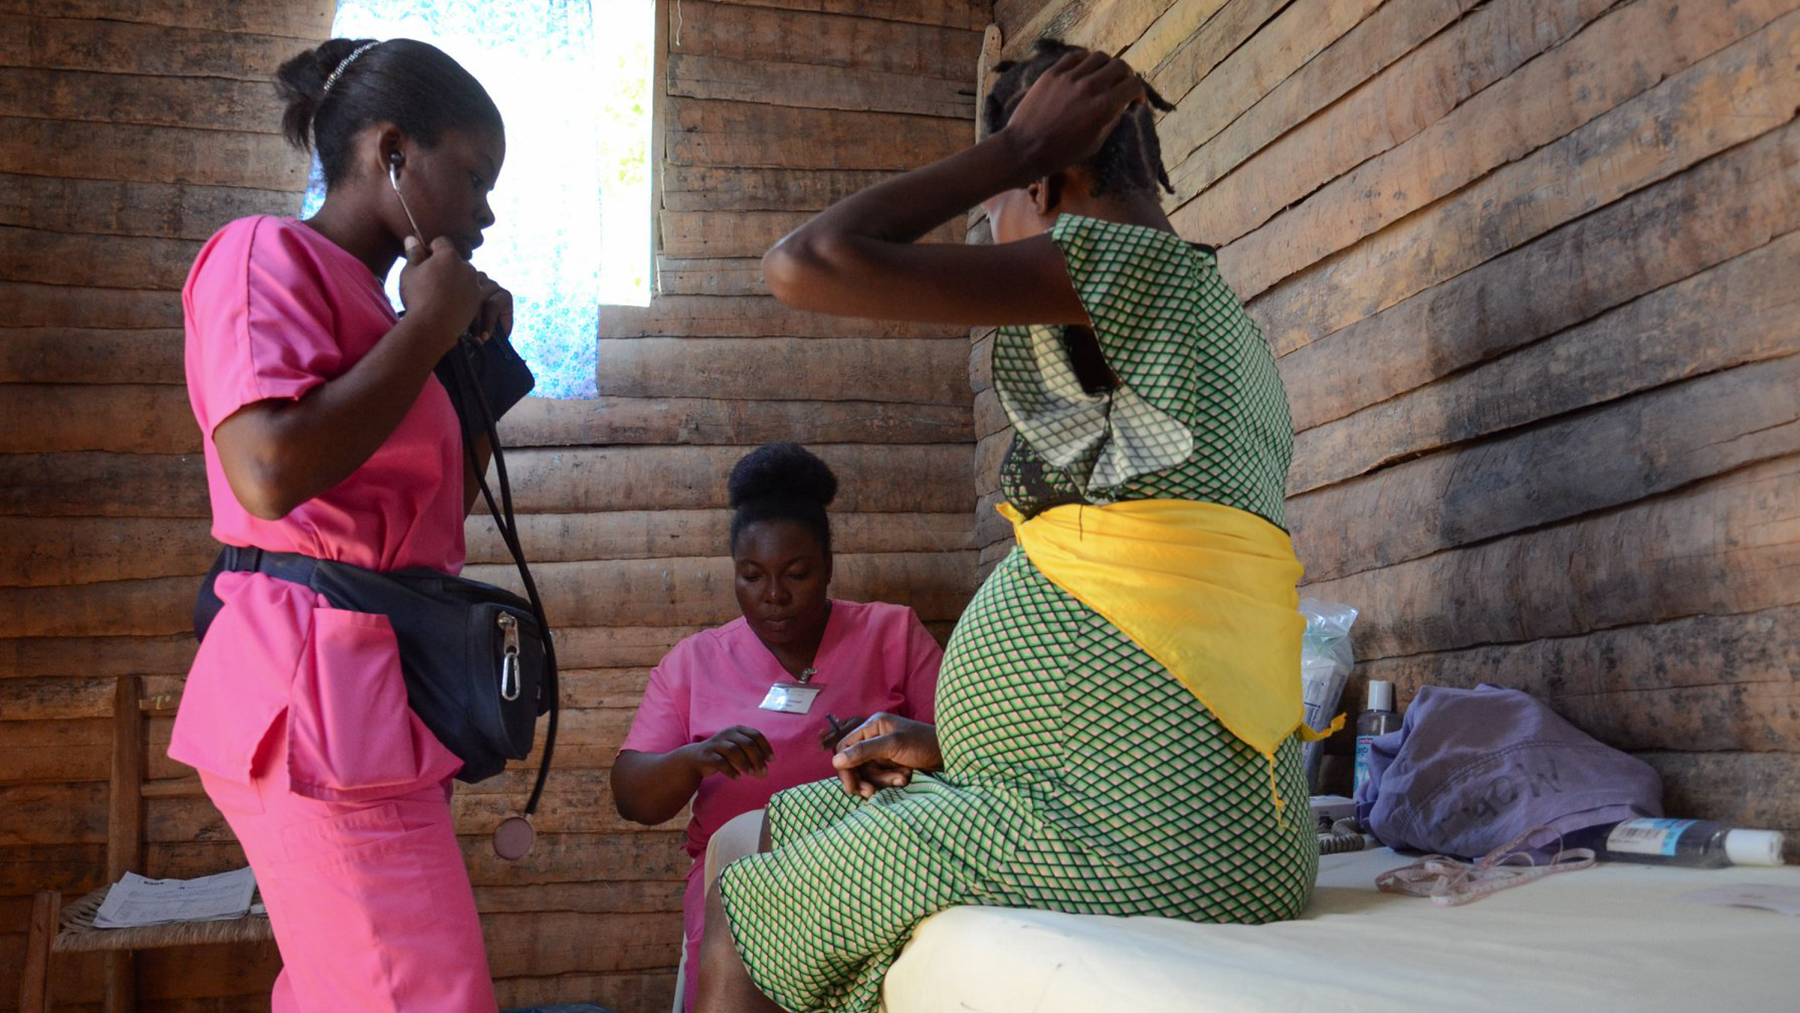 Midwives from the group, Midwives for Haiti, examine a patient during a prenatal visit. (Photo by Phalonne Pierre Louis/FotoKonbit)